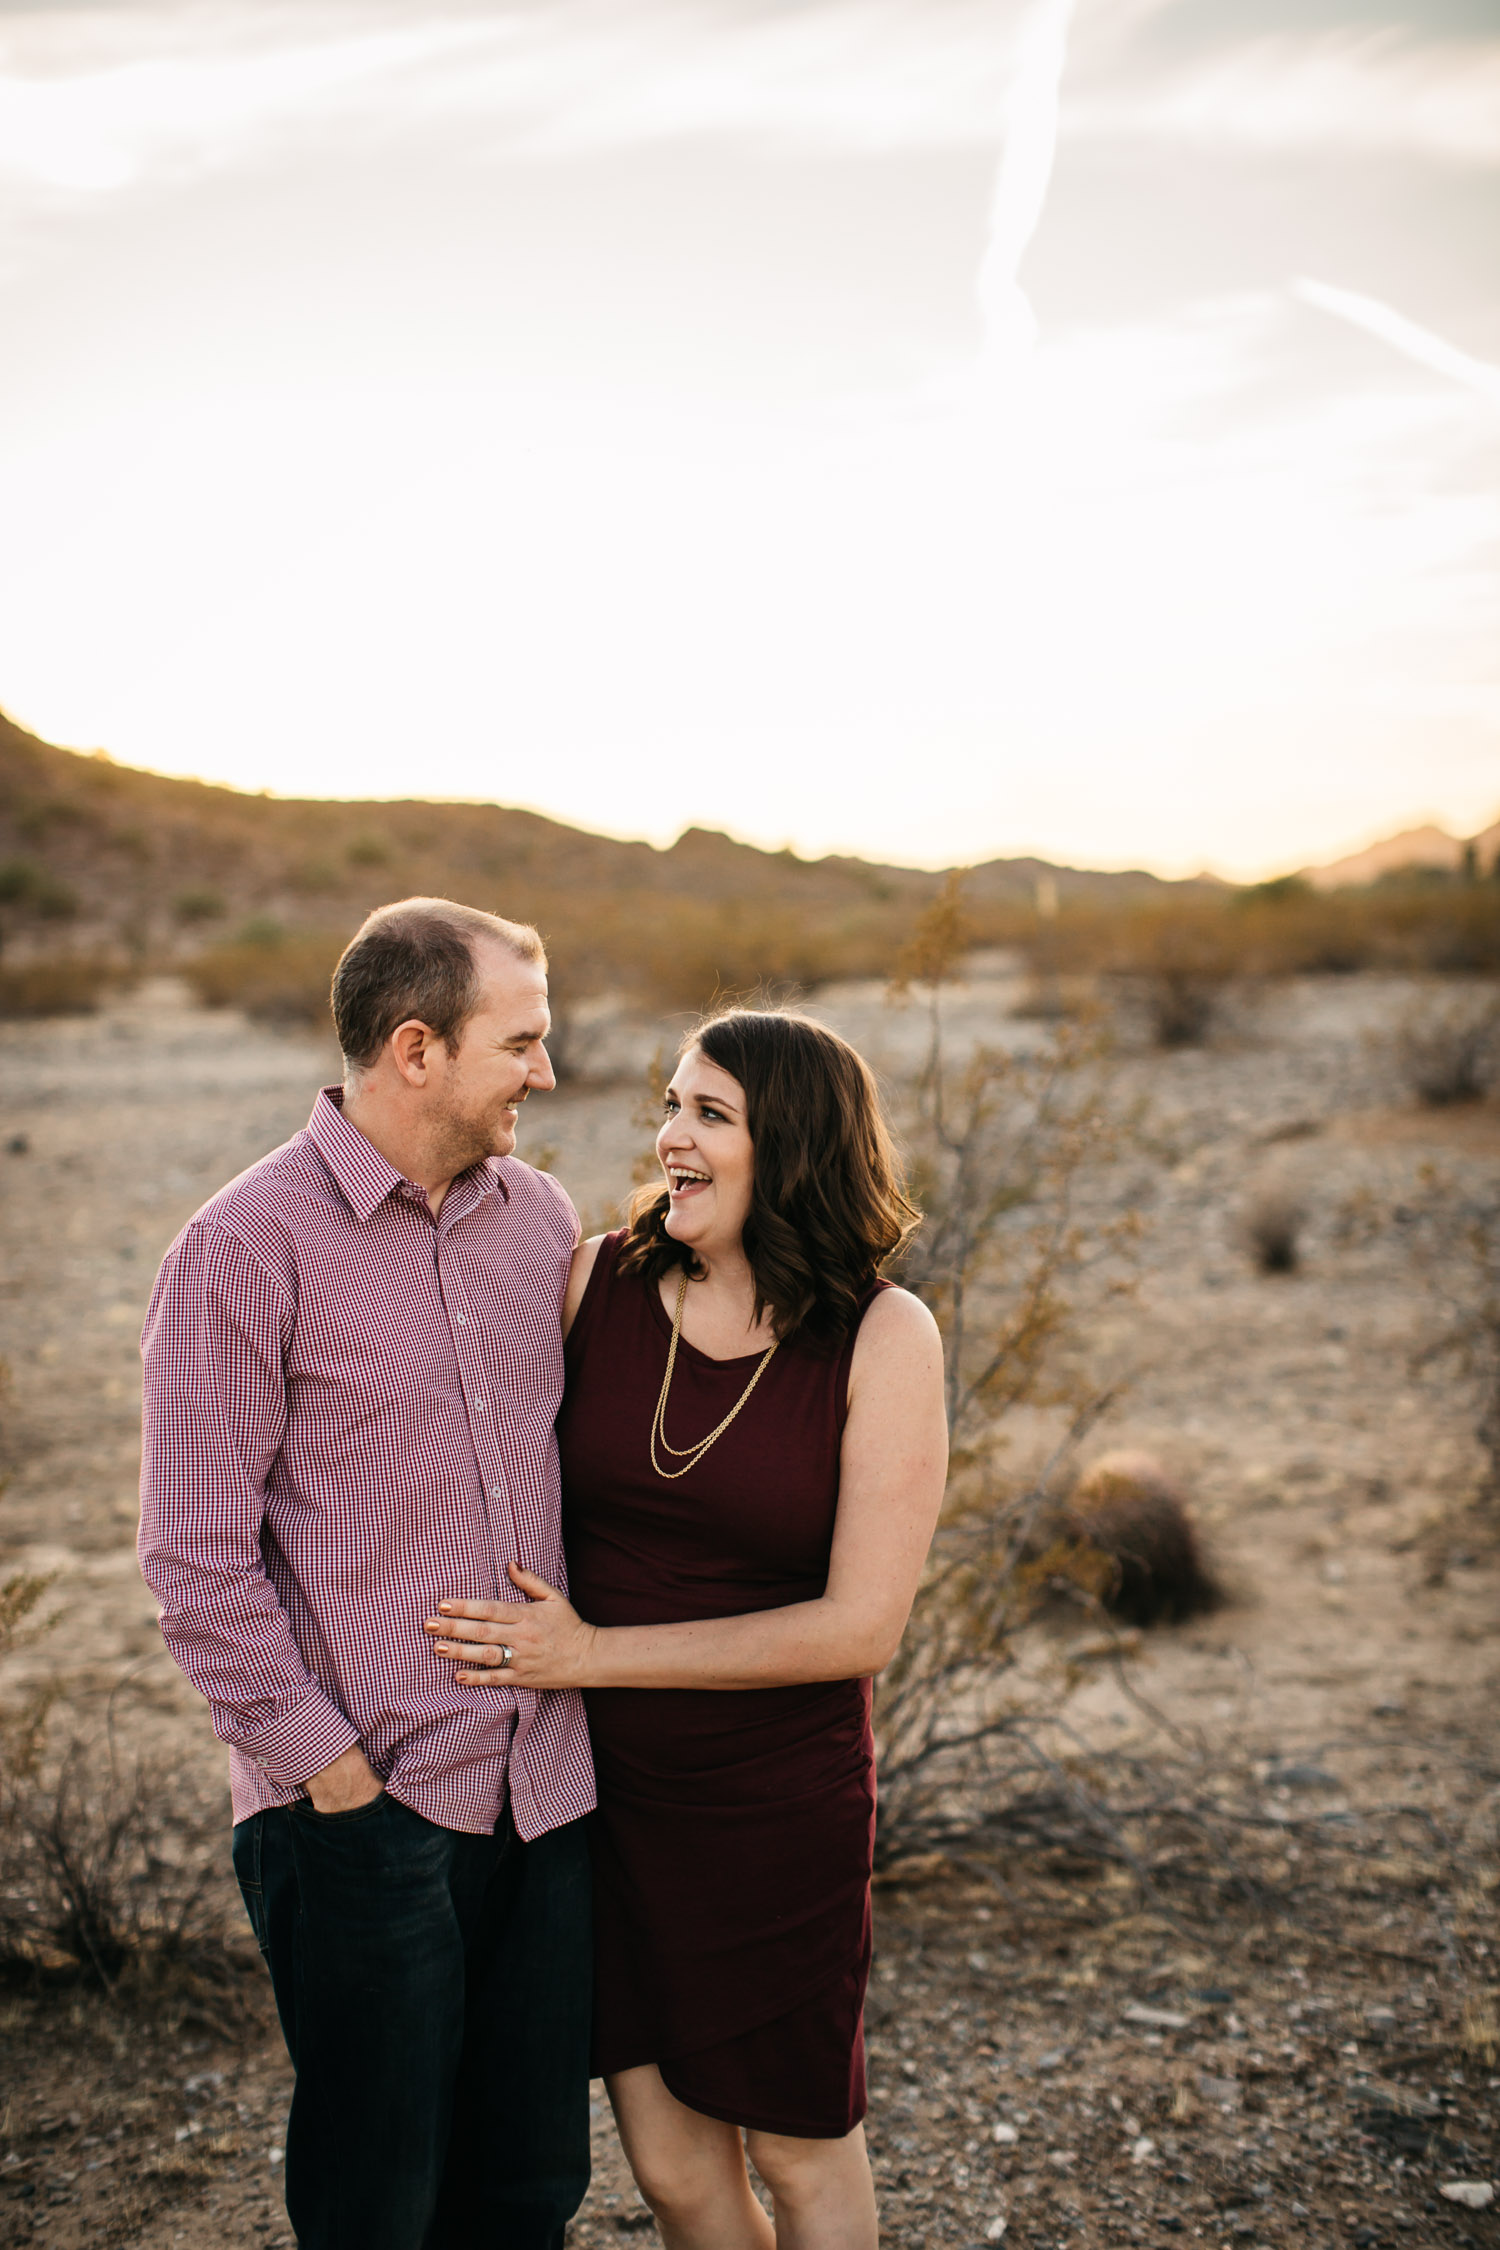 husband and wife mom and dad laughing sunset Arizona desert photo